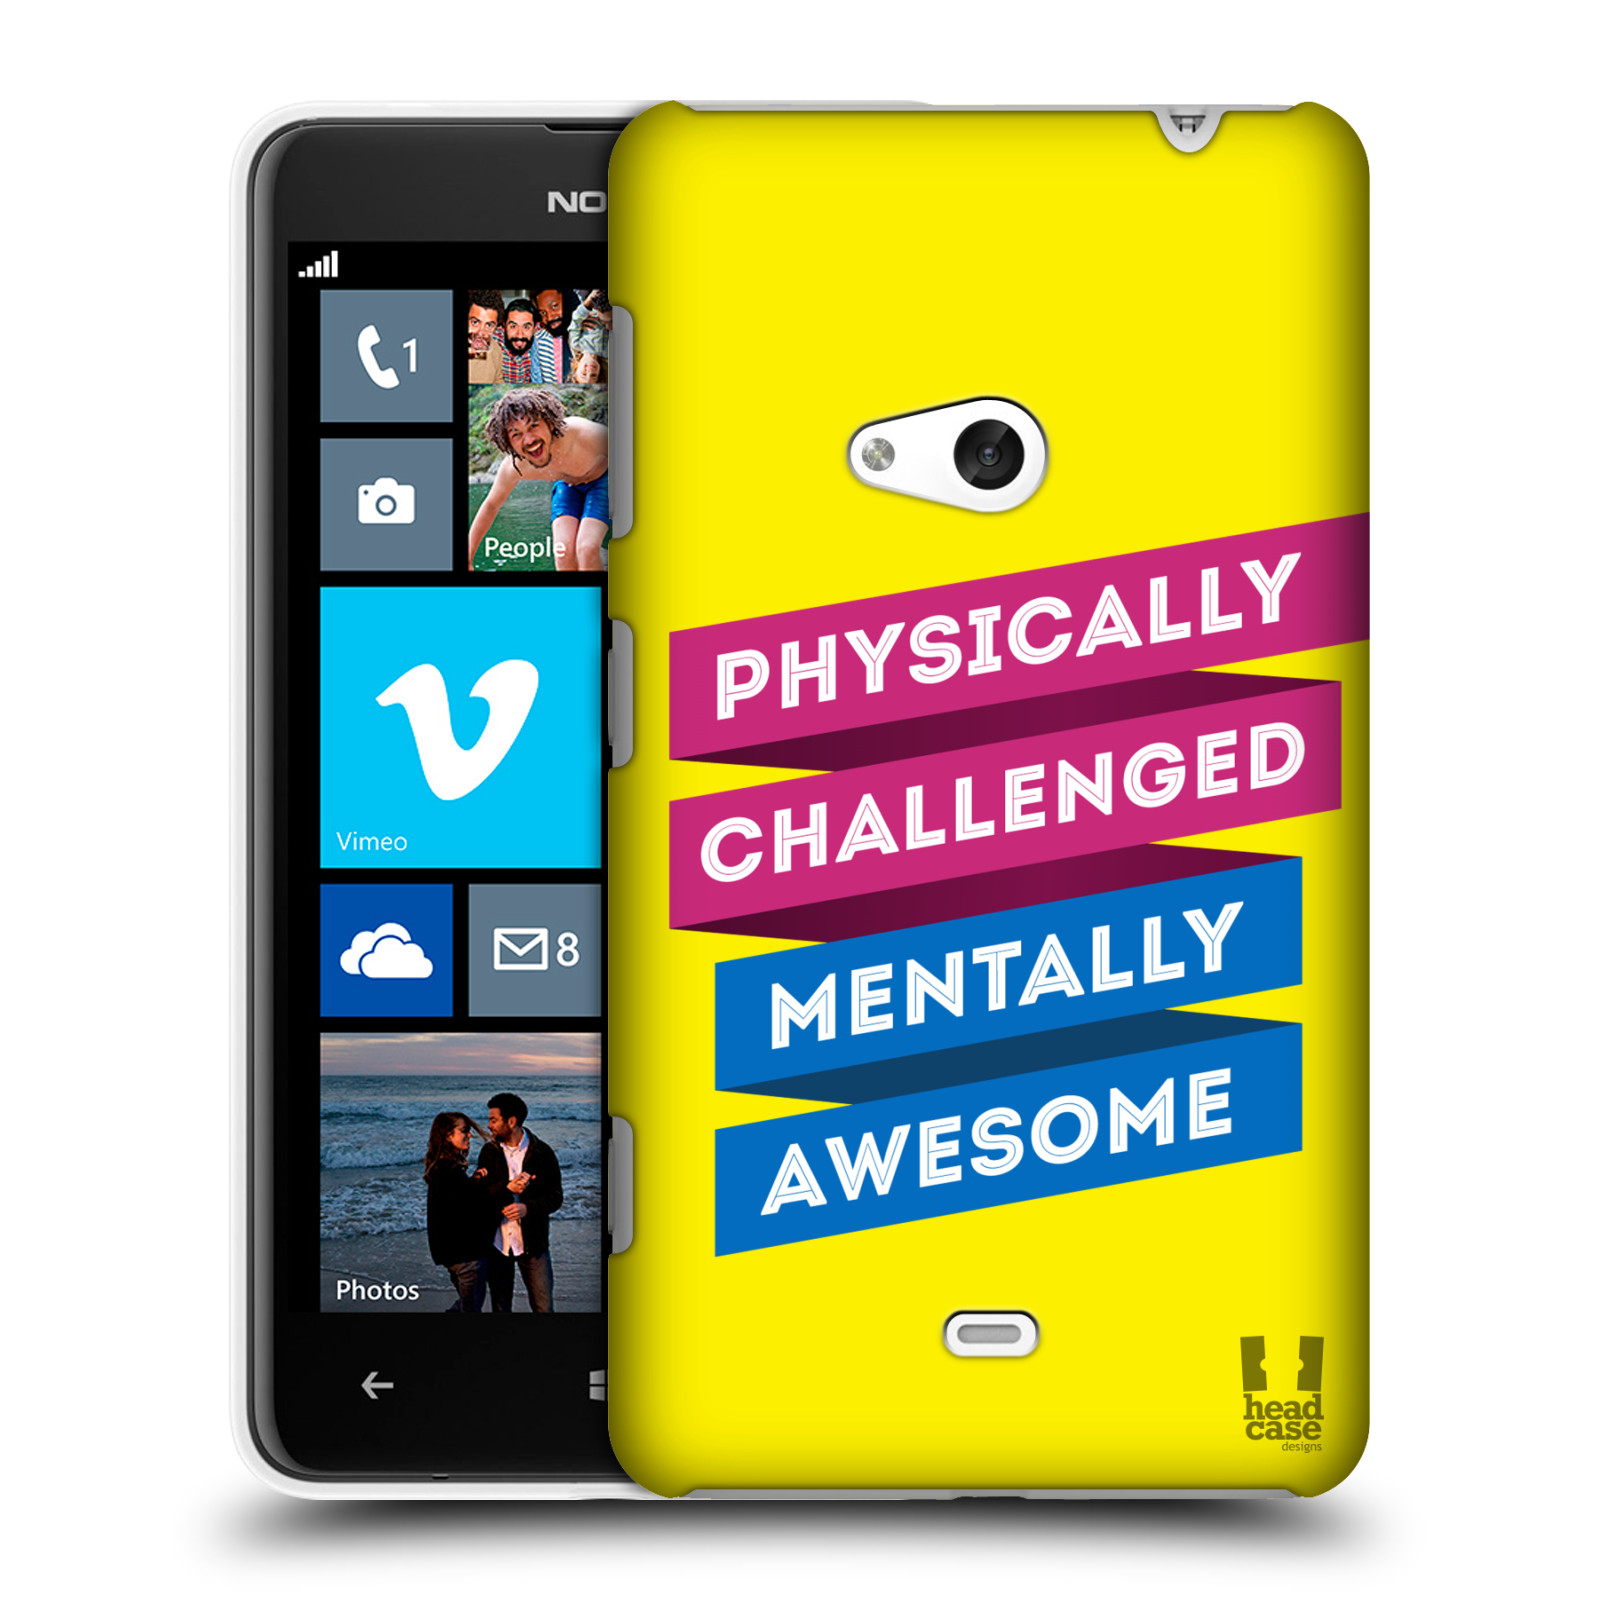 HEAD CASE DESIGNS BEYOND THE DISABILITY CASE COVER FOR NOKIA LUMIA 625